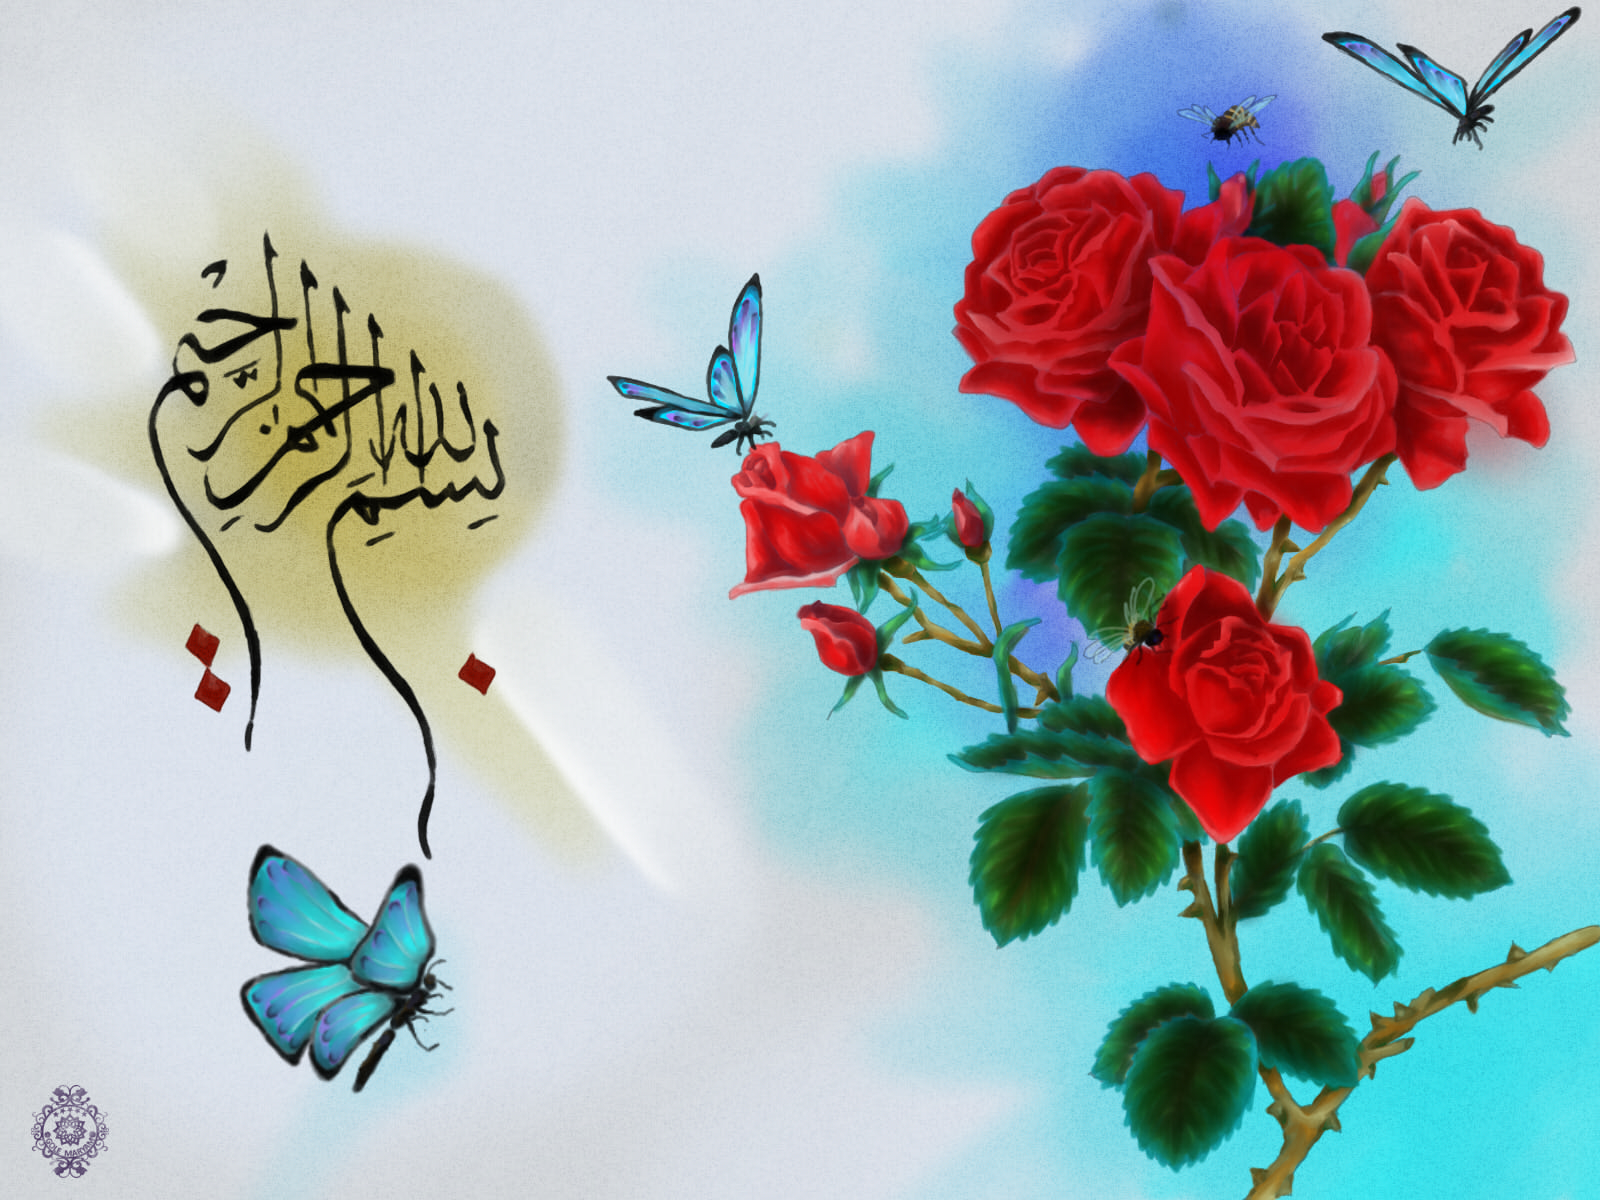 Amazing Wallpaper Name Maryam - the_name_of_god_the_merciful_with_roses_by_golemaryam-d8nle29  Snapshot_428070.jpg